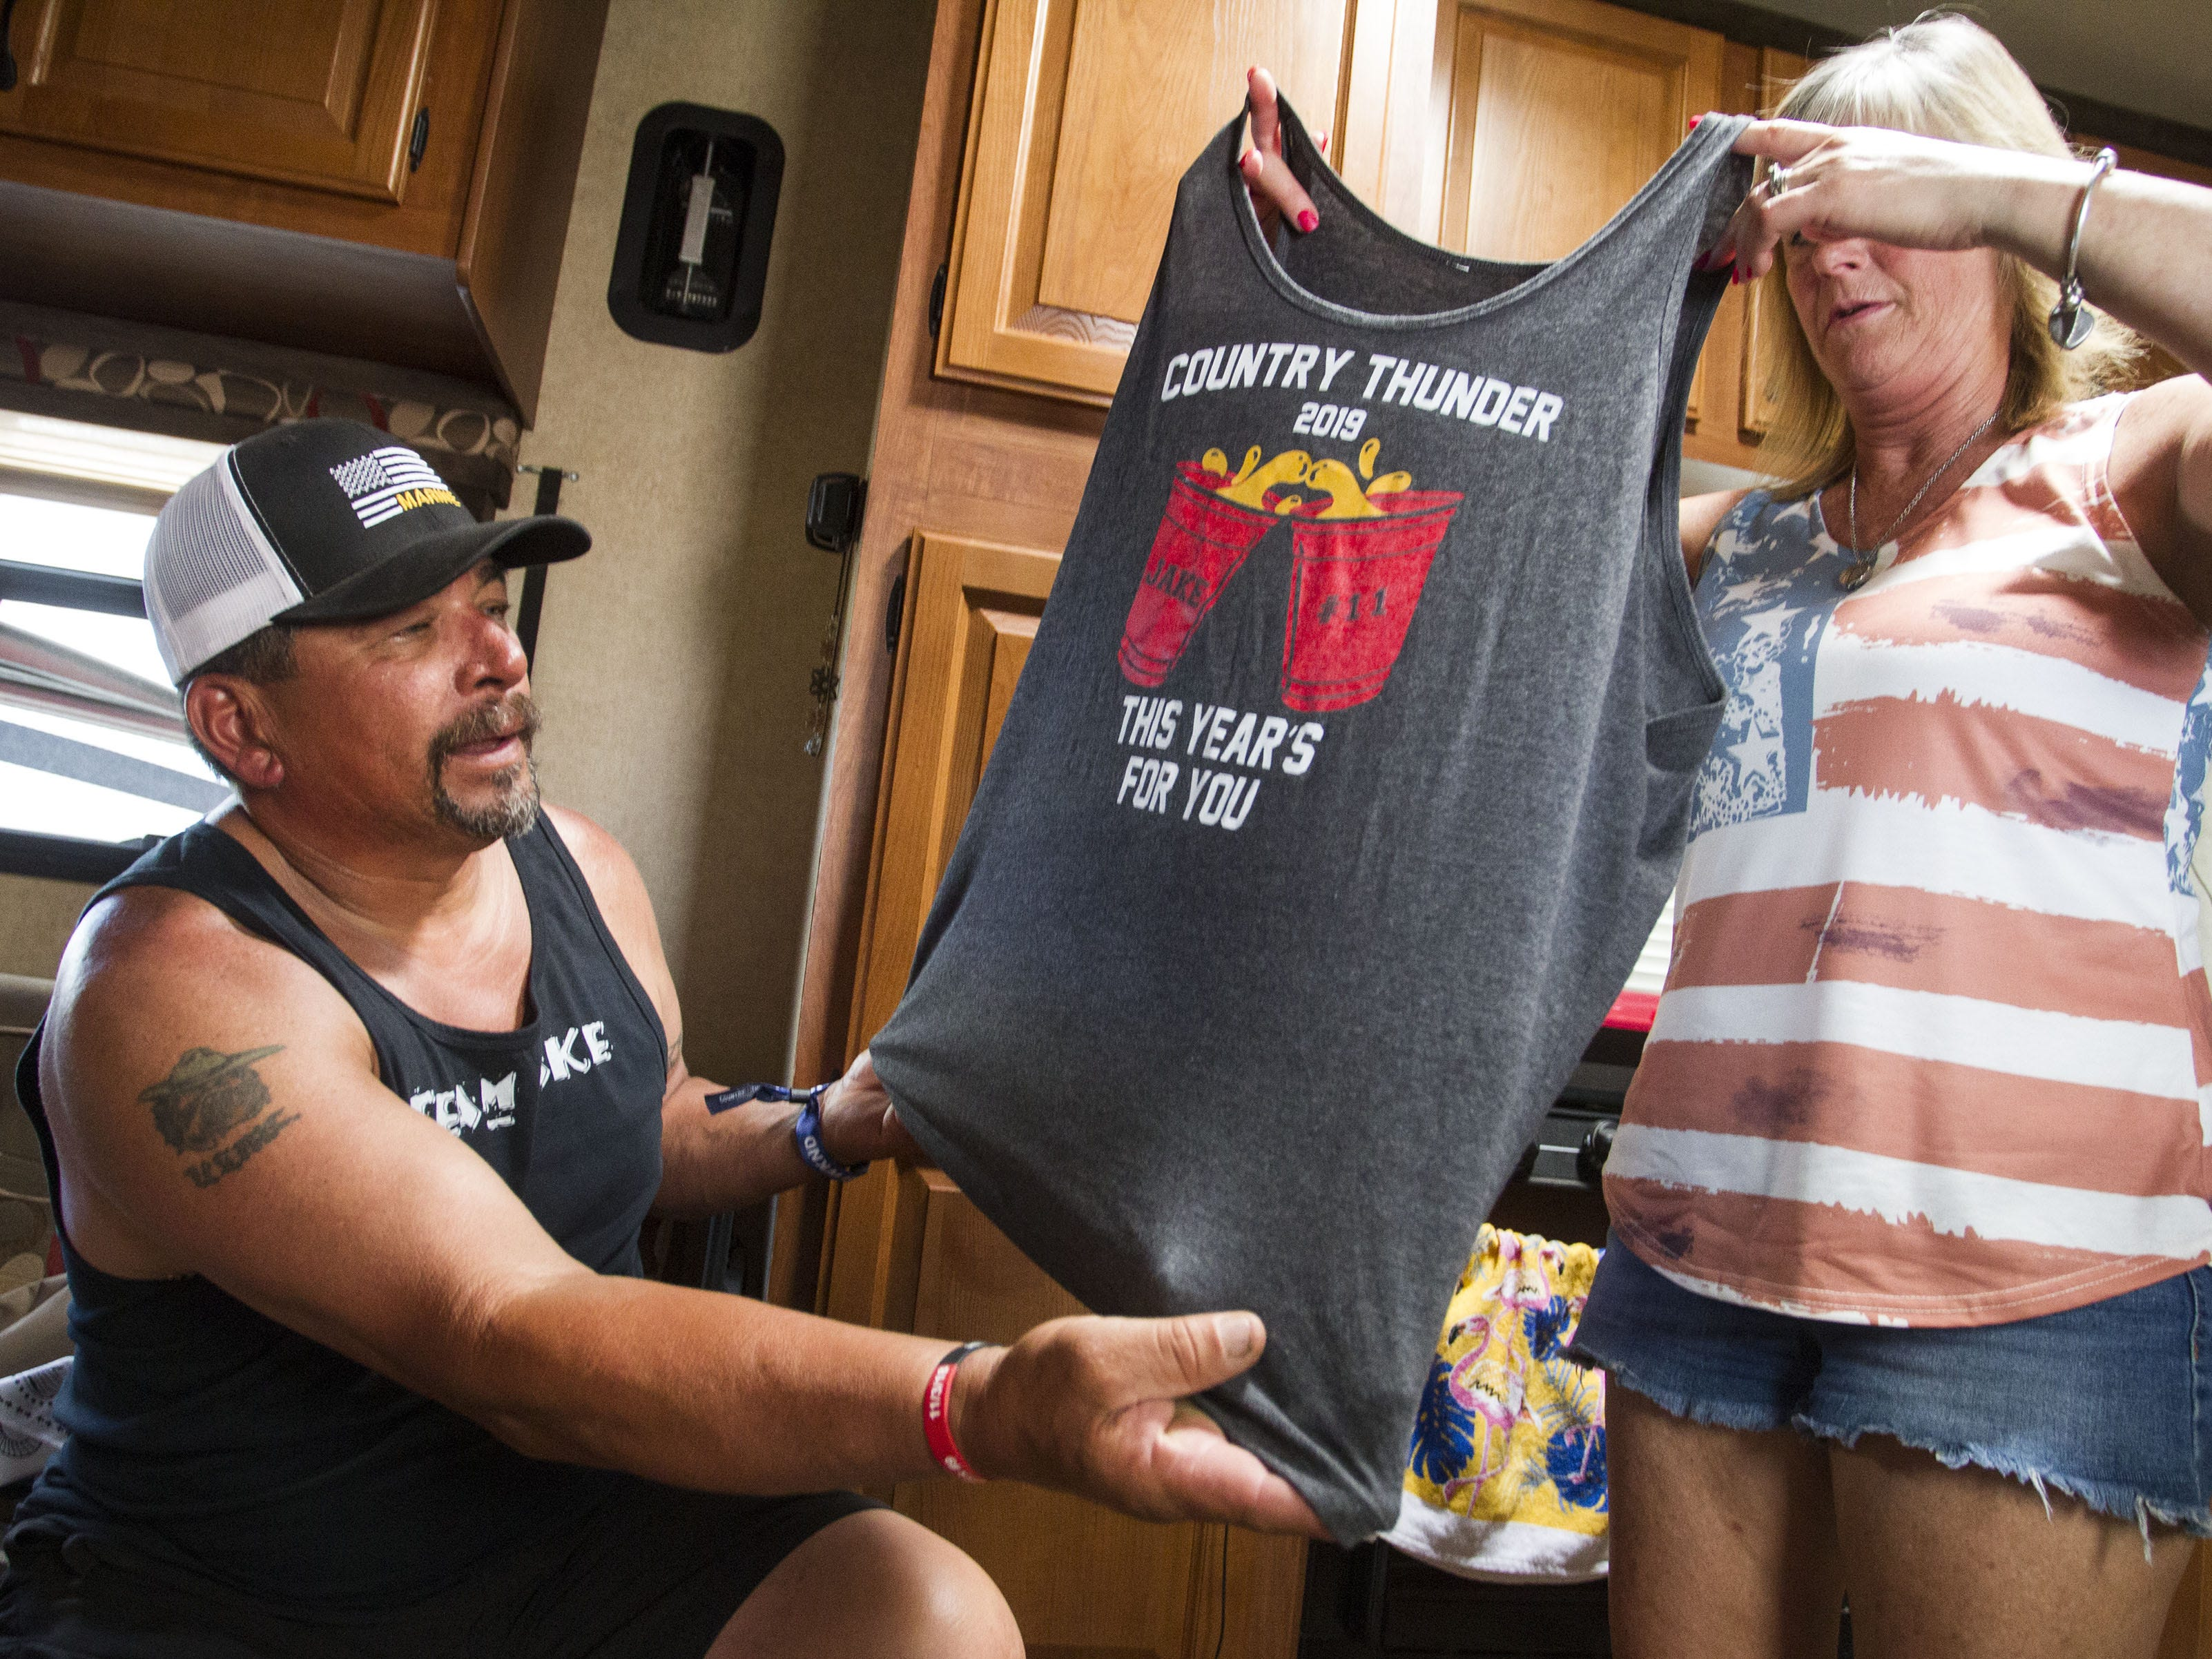 Terri and Ray Morales, of Prescott Valley, hold a shirt they designed for their son Jake after he passed unexpectedly from Fentanyl overdose.  The Morales were at Country Thunder  to honor Jake and his friend Gunner Bundrick.